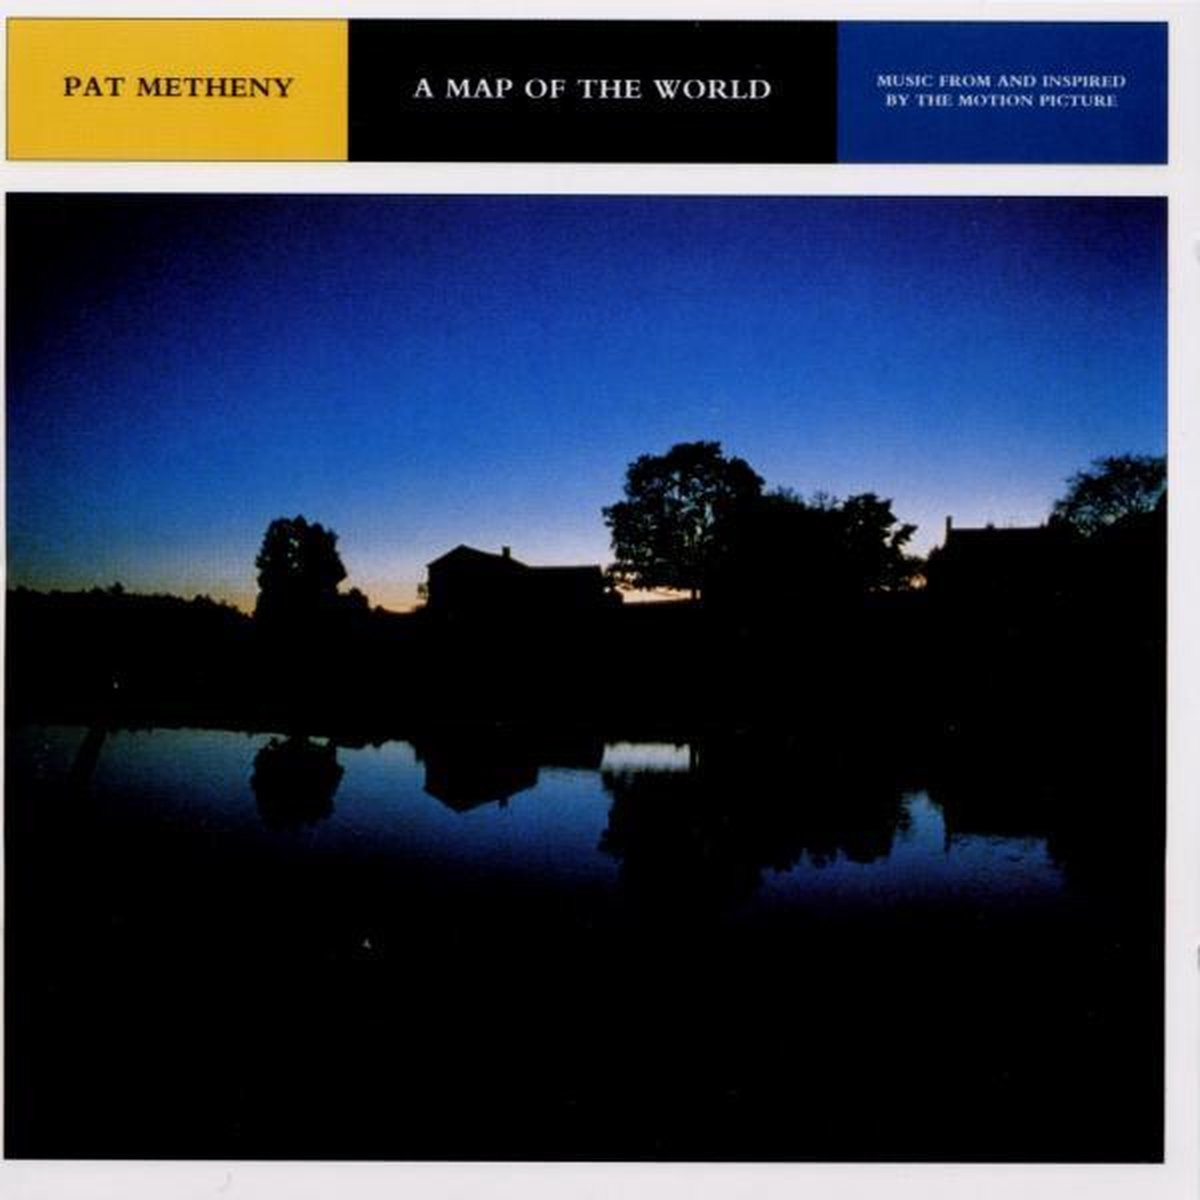 A Map Of The World: Music From And Inspired By The Motion Picture - Pat Metheny